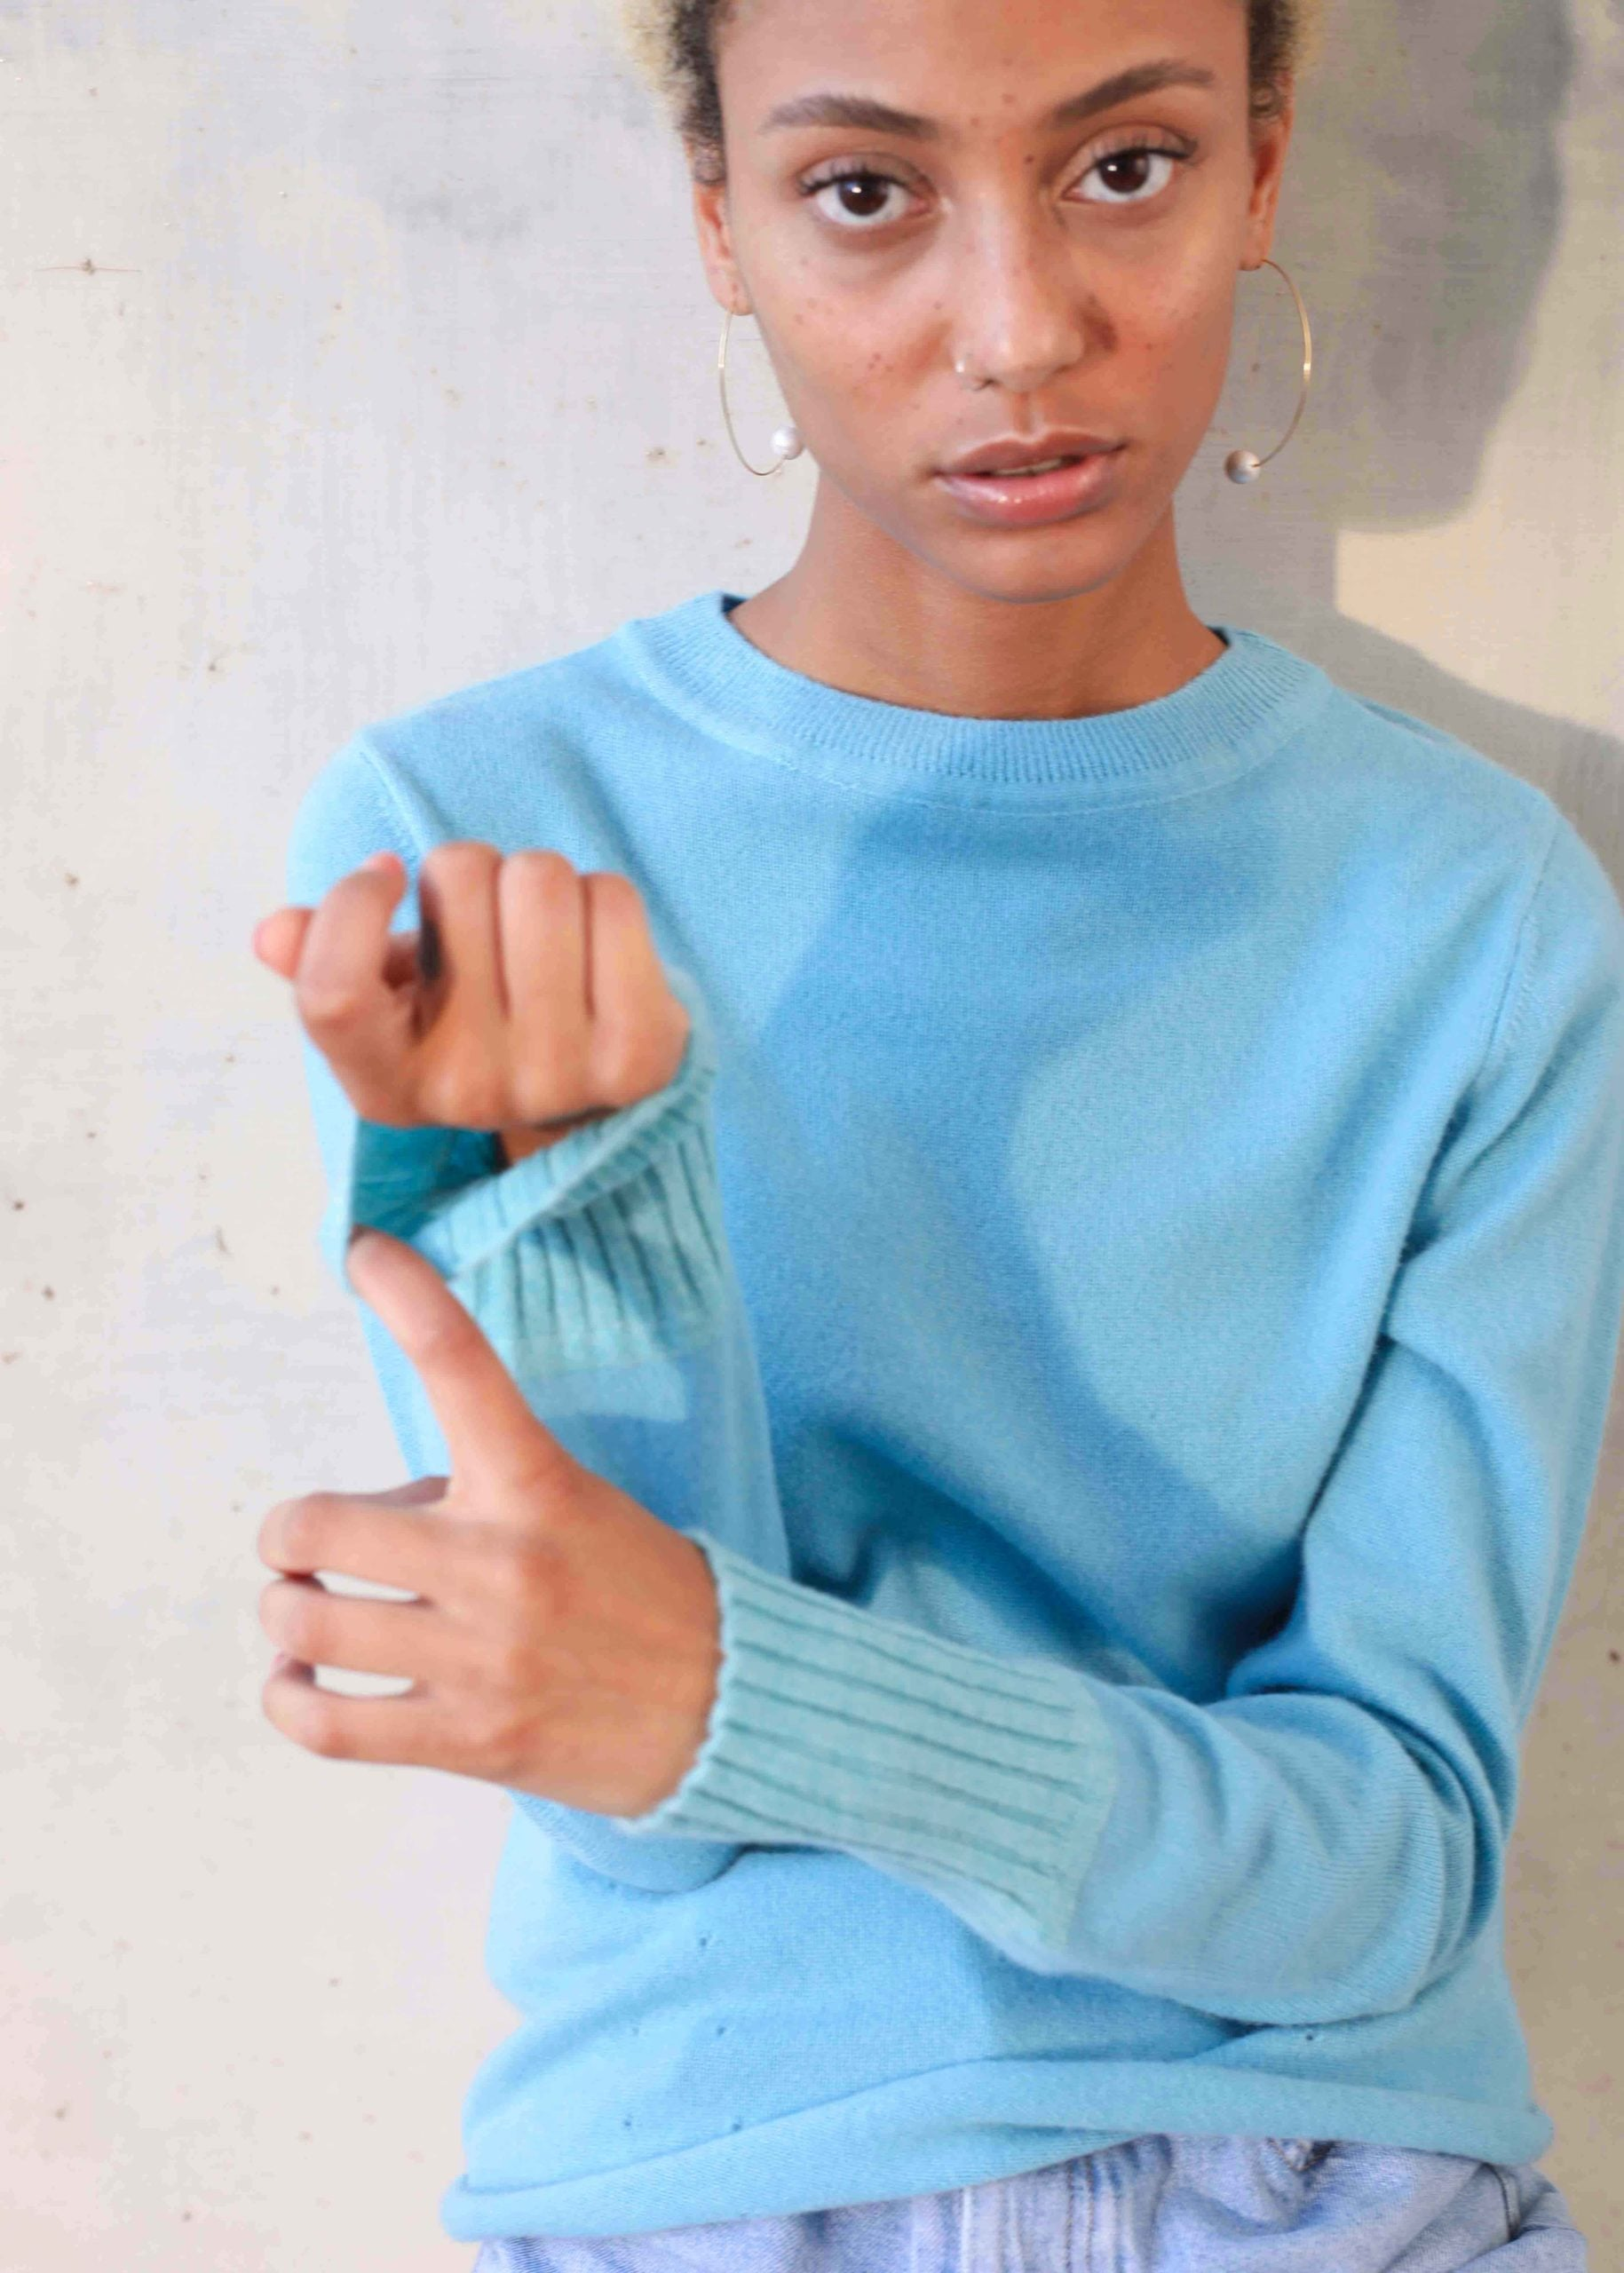 Model wearing blue cashmere sweater